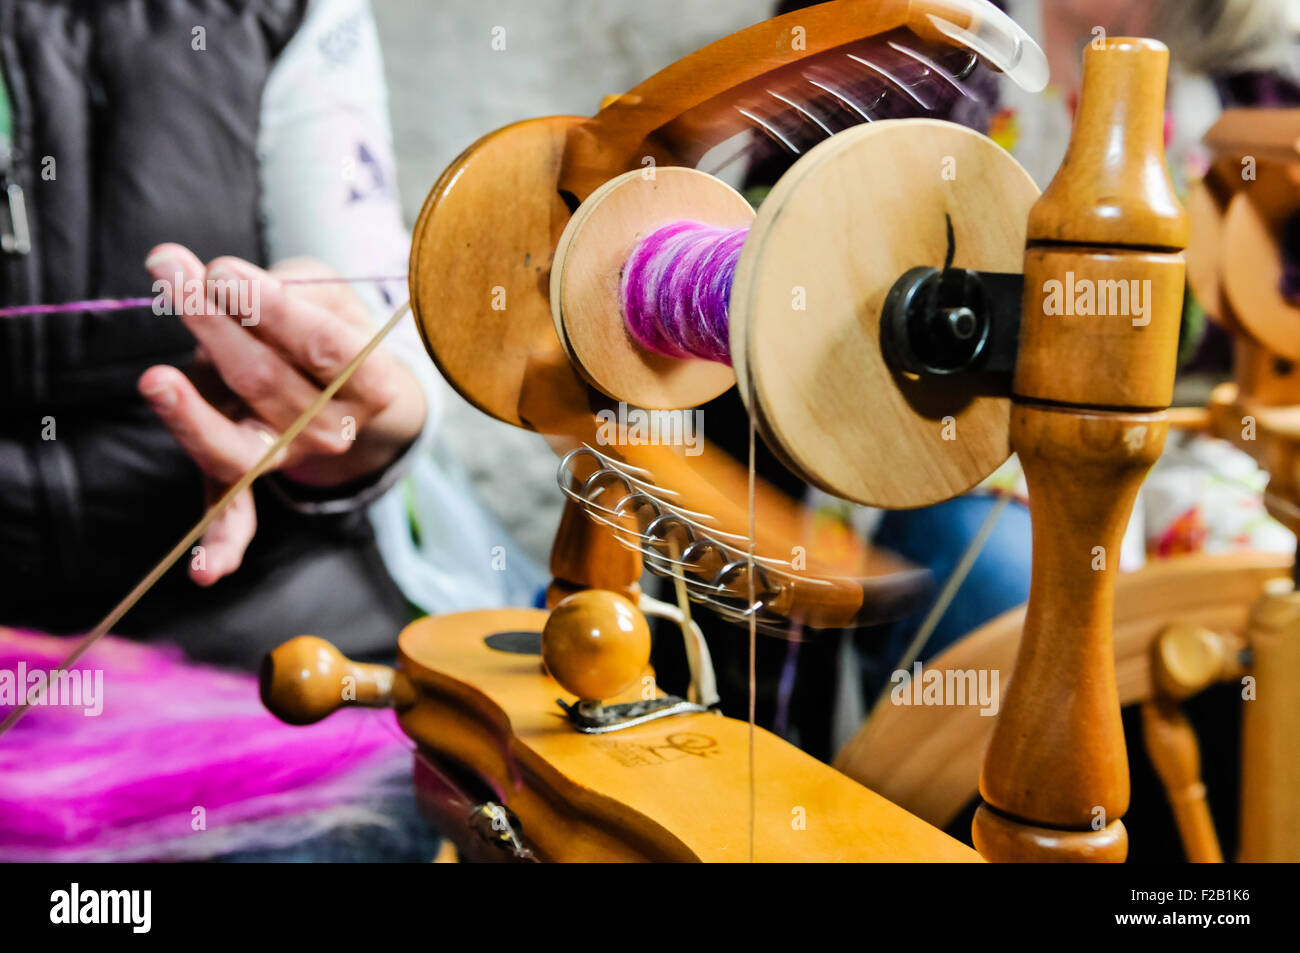 A woman spins wool using a traditional spinning wheel. - Stock Image